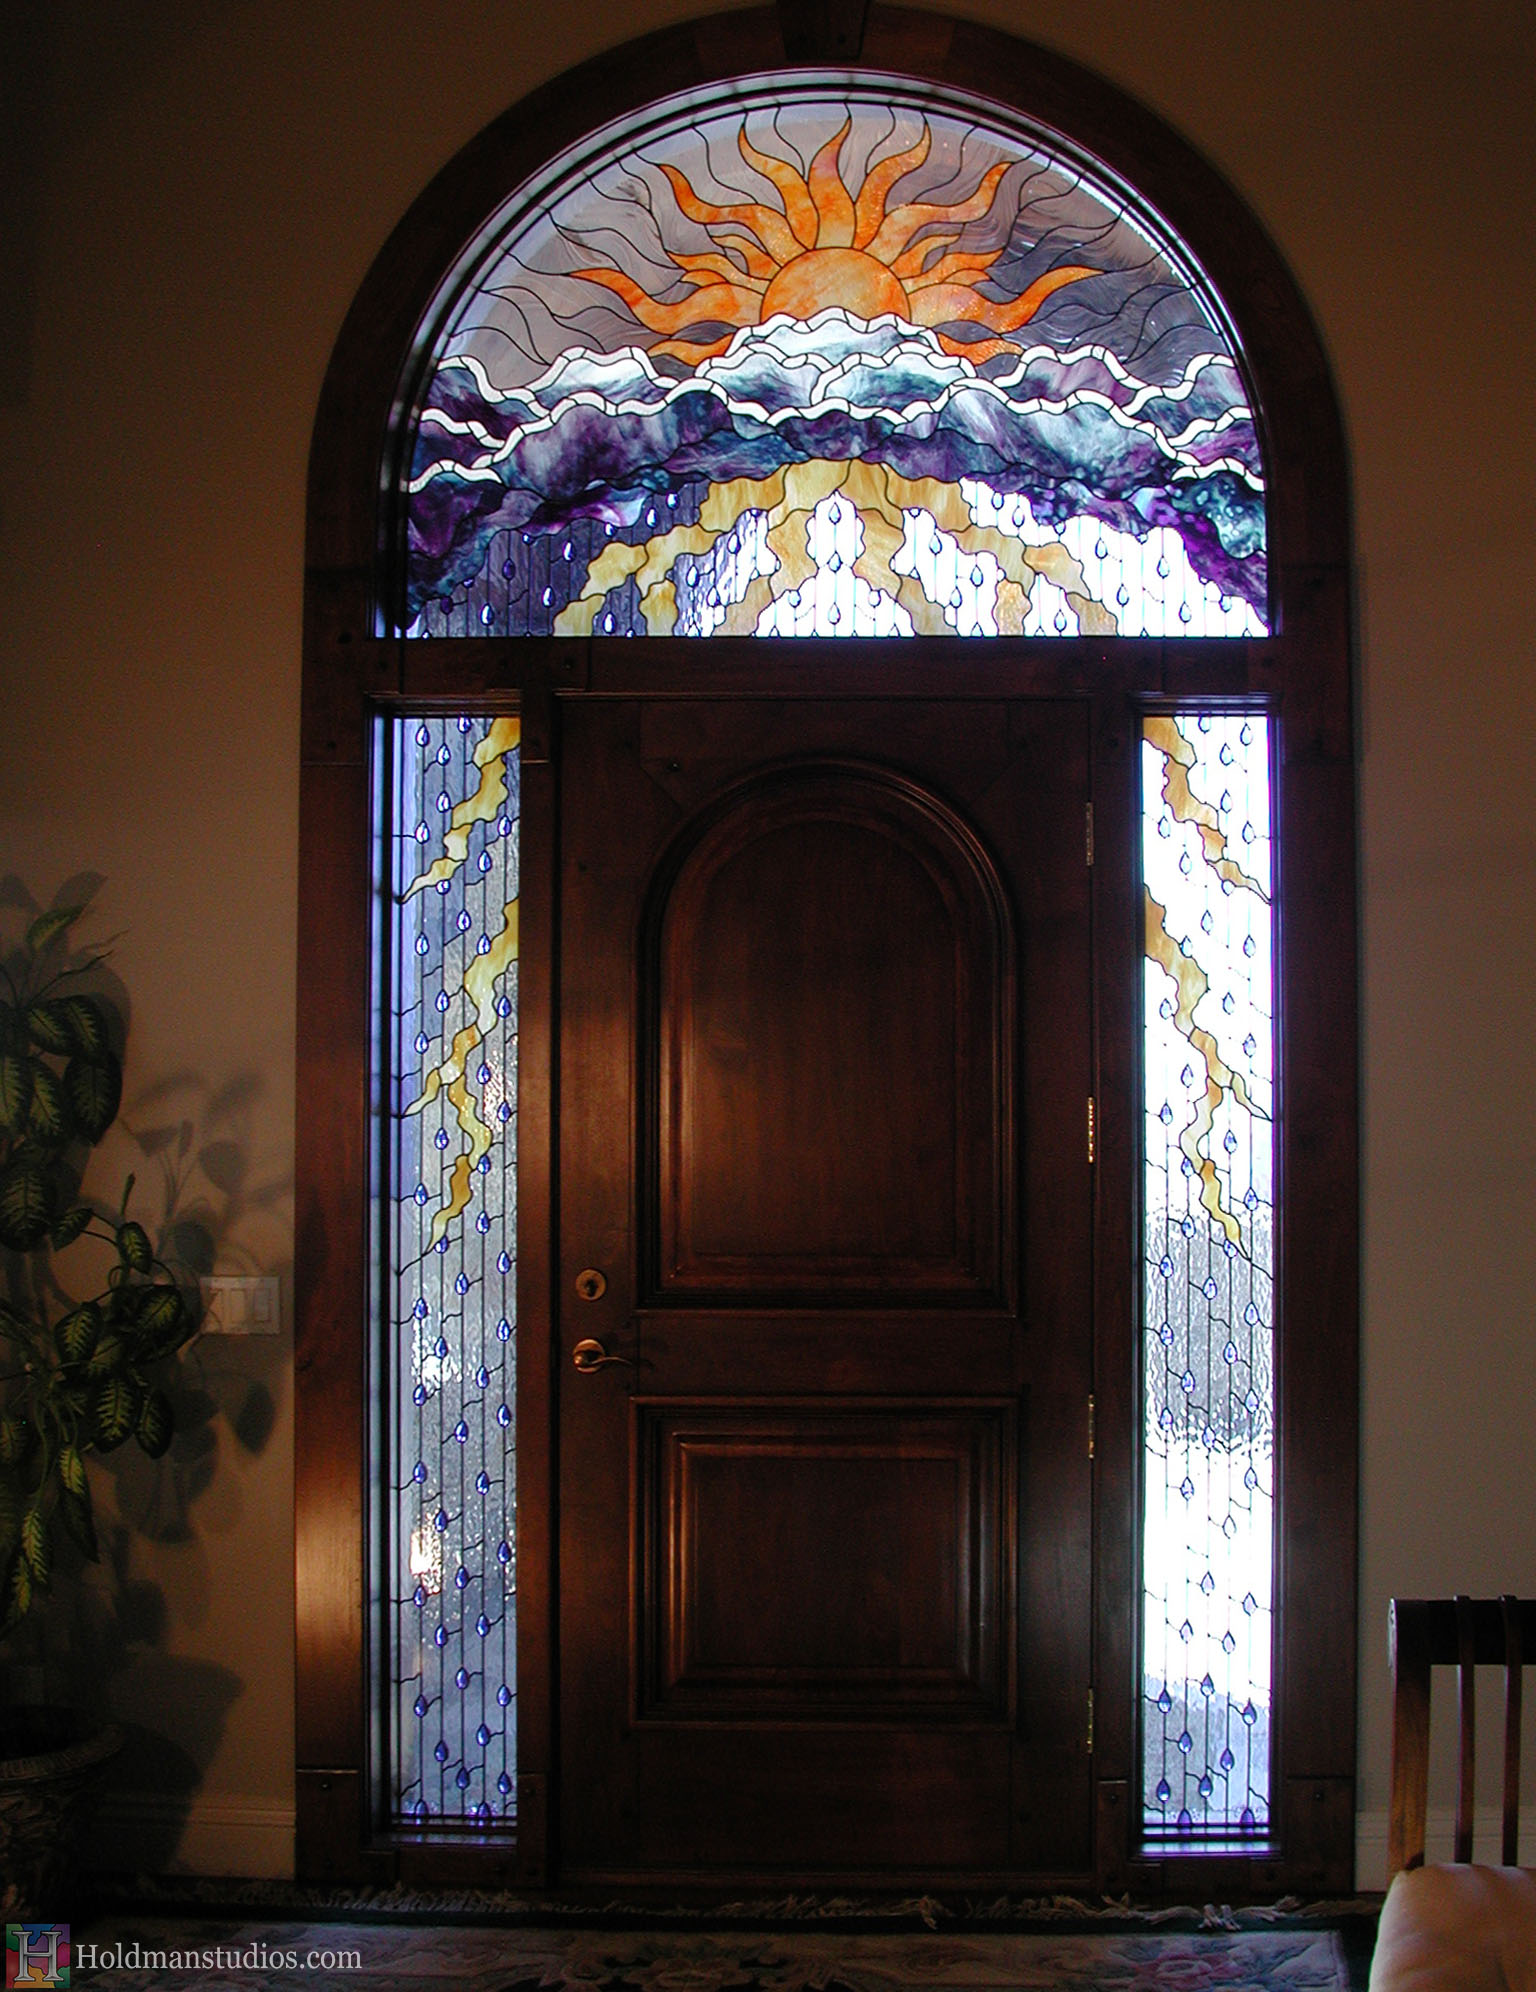 Holdman-Studios-Stained-Glass-Window-Doorway-Sun-Clouds-Rain-Lightning-Silver-Lining.jpg